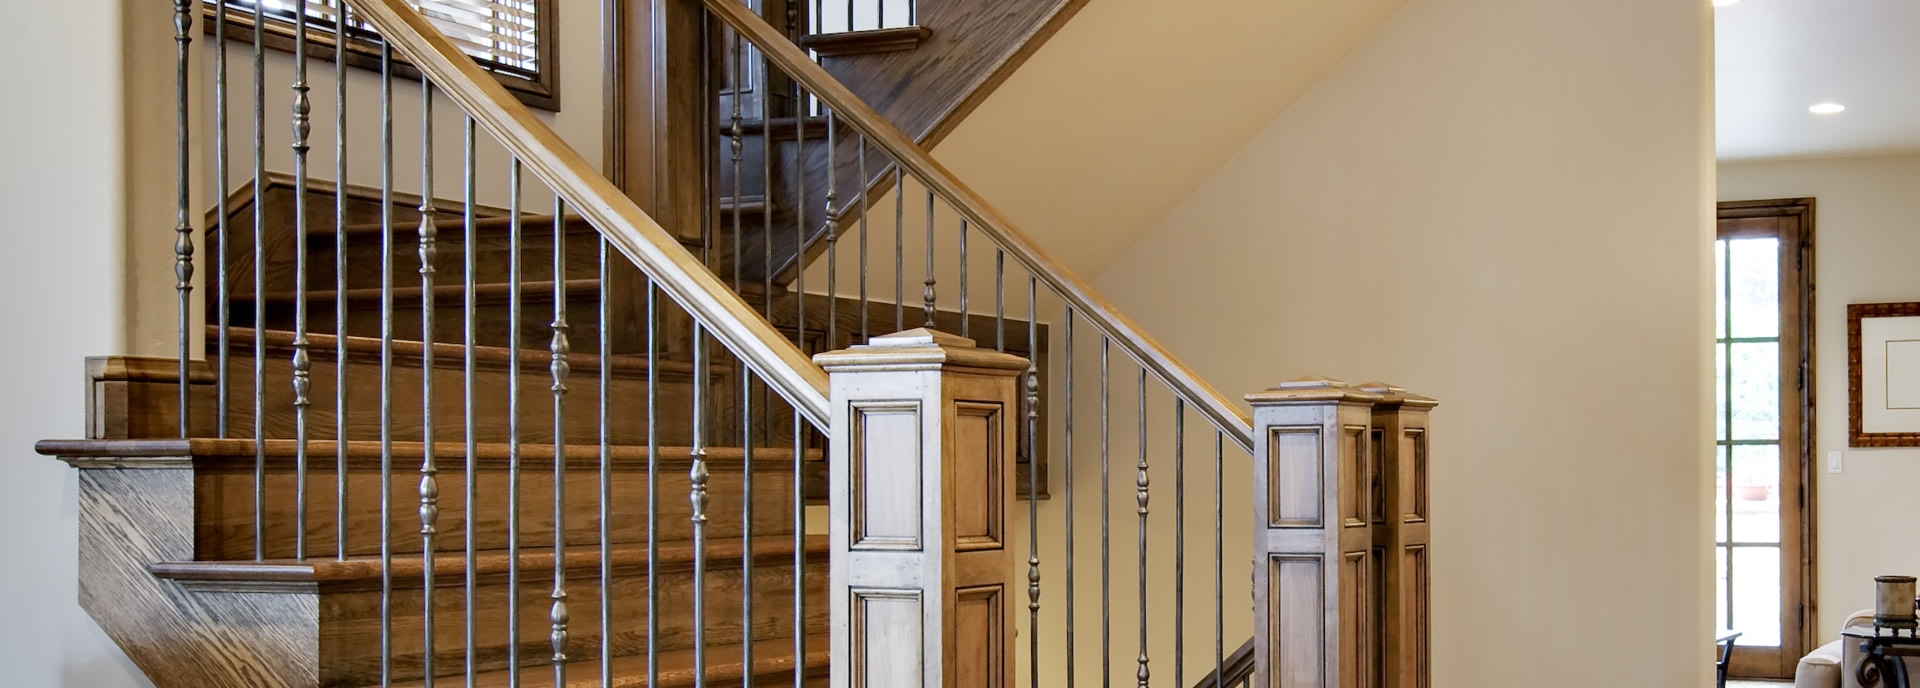 Craftsman Southern Staircase Artistic Stairs   Craftsman Stair Railing Designs   Homemade   Simple 2Nd Floor Railing Wood Stairs Iron Railing Design   Entryway Stair   Plain Traditional Stair   Floor To Ceiling